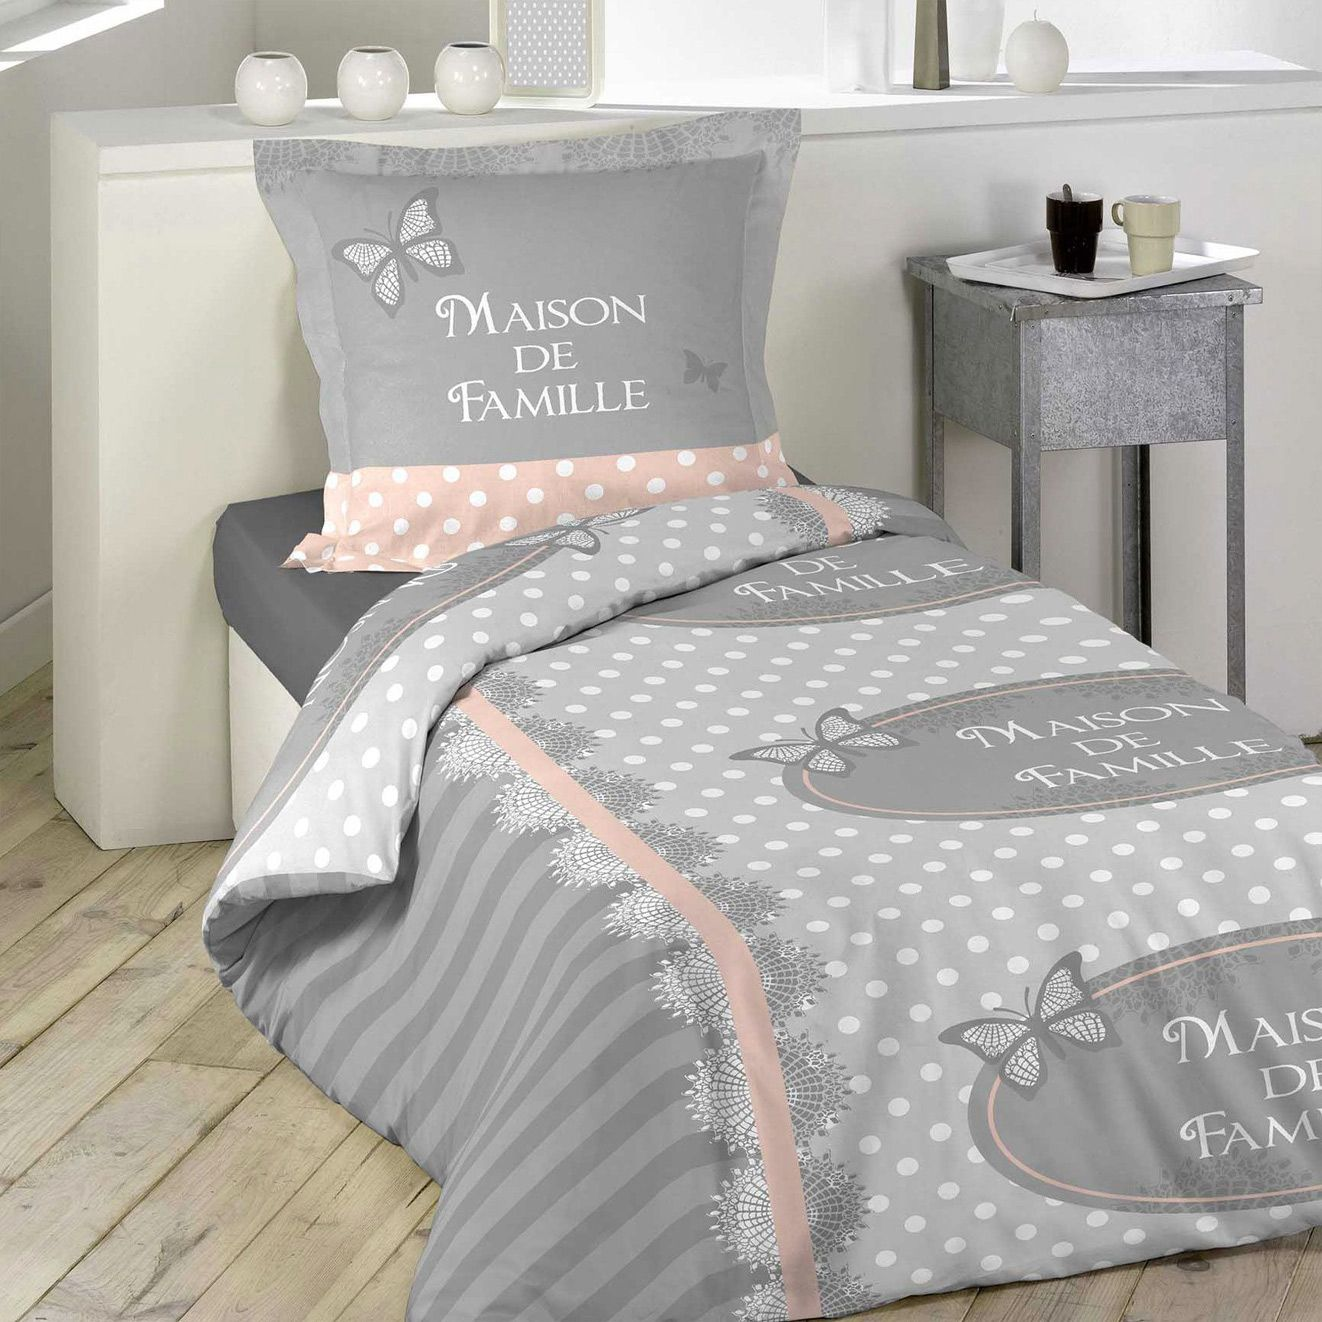 housse de couette et taie lili 100 coton 140 cm gris housse de couette eminza. Black Bedroom Furniture Sets. Home Design Ideas